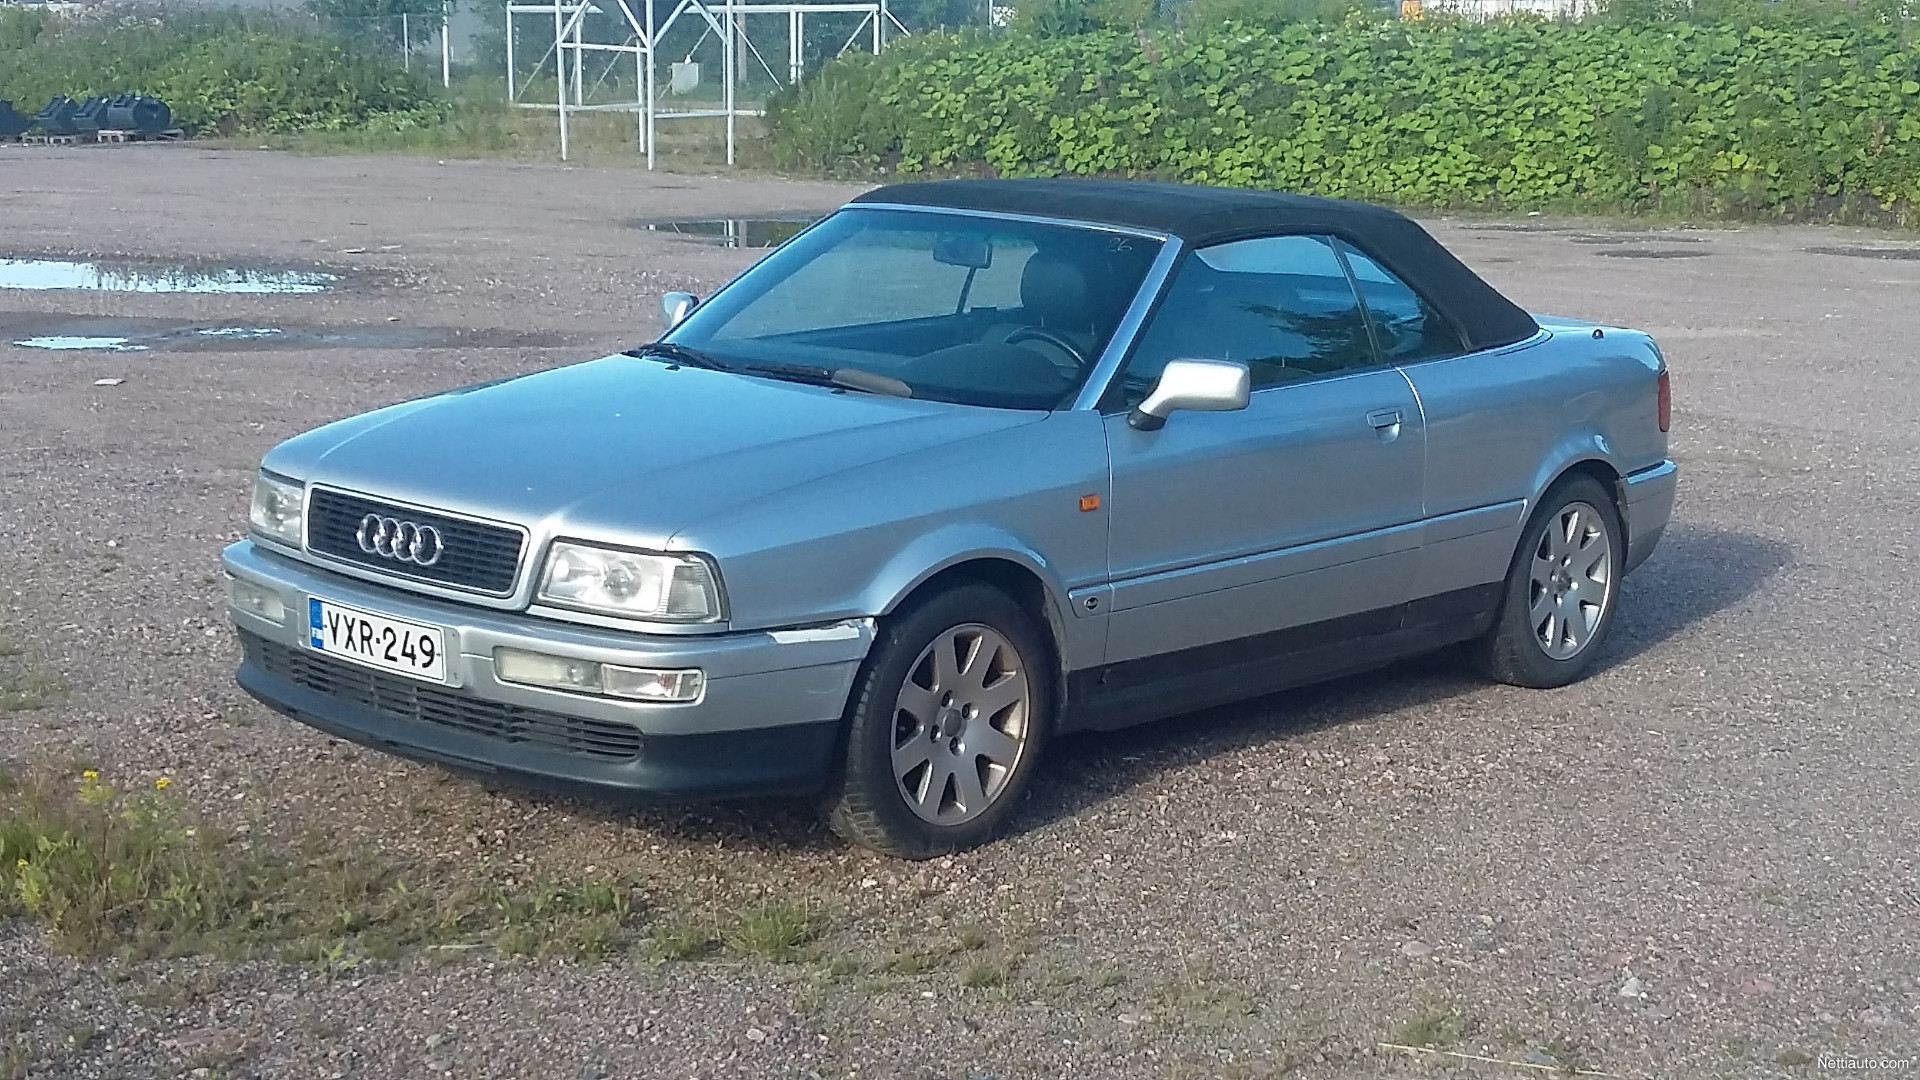 cabriolet e pope img audi seymour used details vehicle large